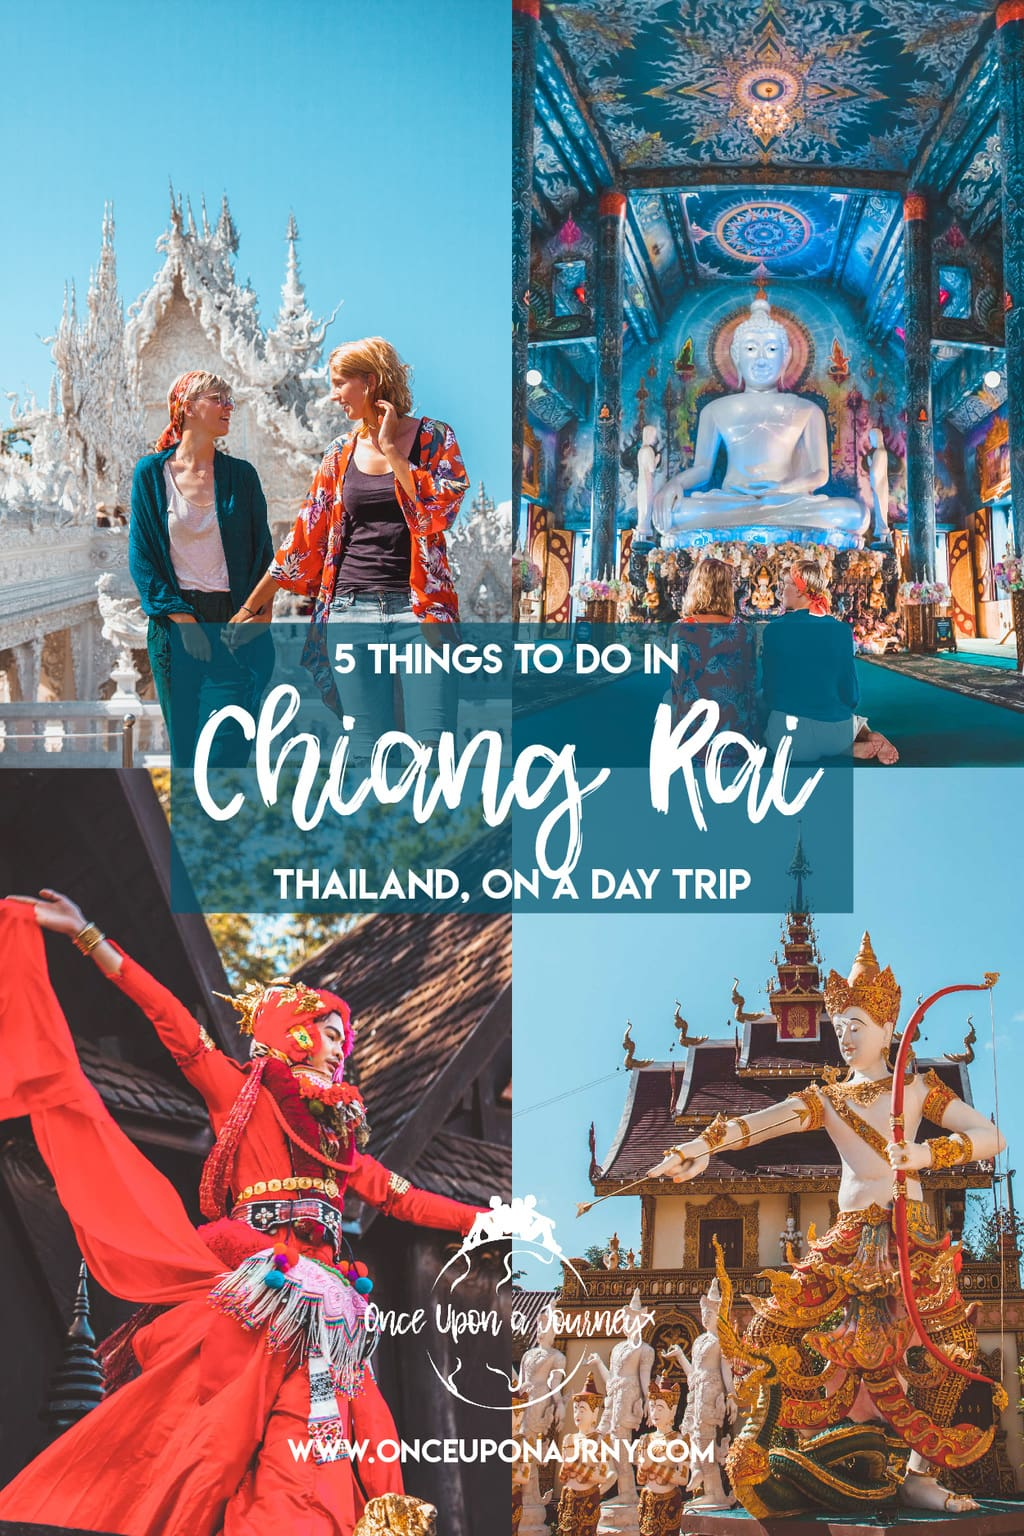 5 Things to Do in Chiang Rai on a Day Trip | Once Upon A Journey - LGBT Travel Blog #chiangrai #chiangmai #thailand #temple #travel